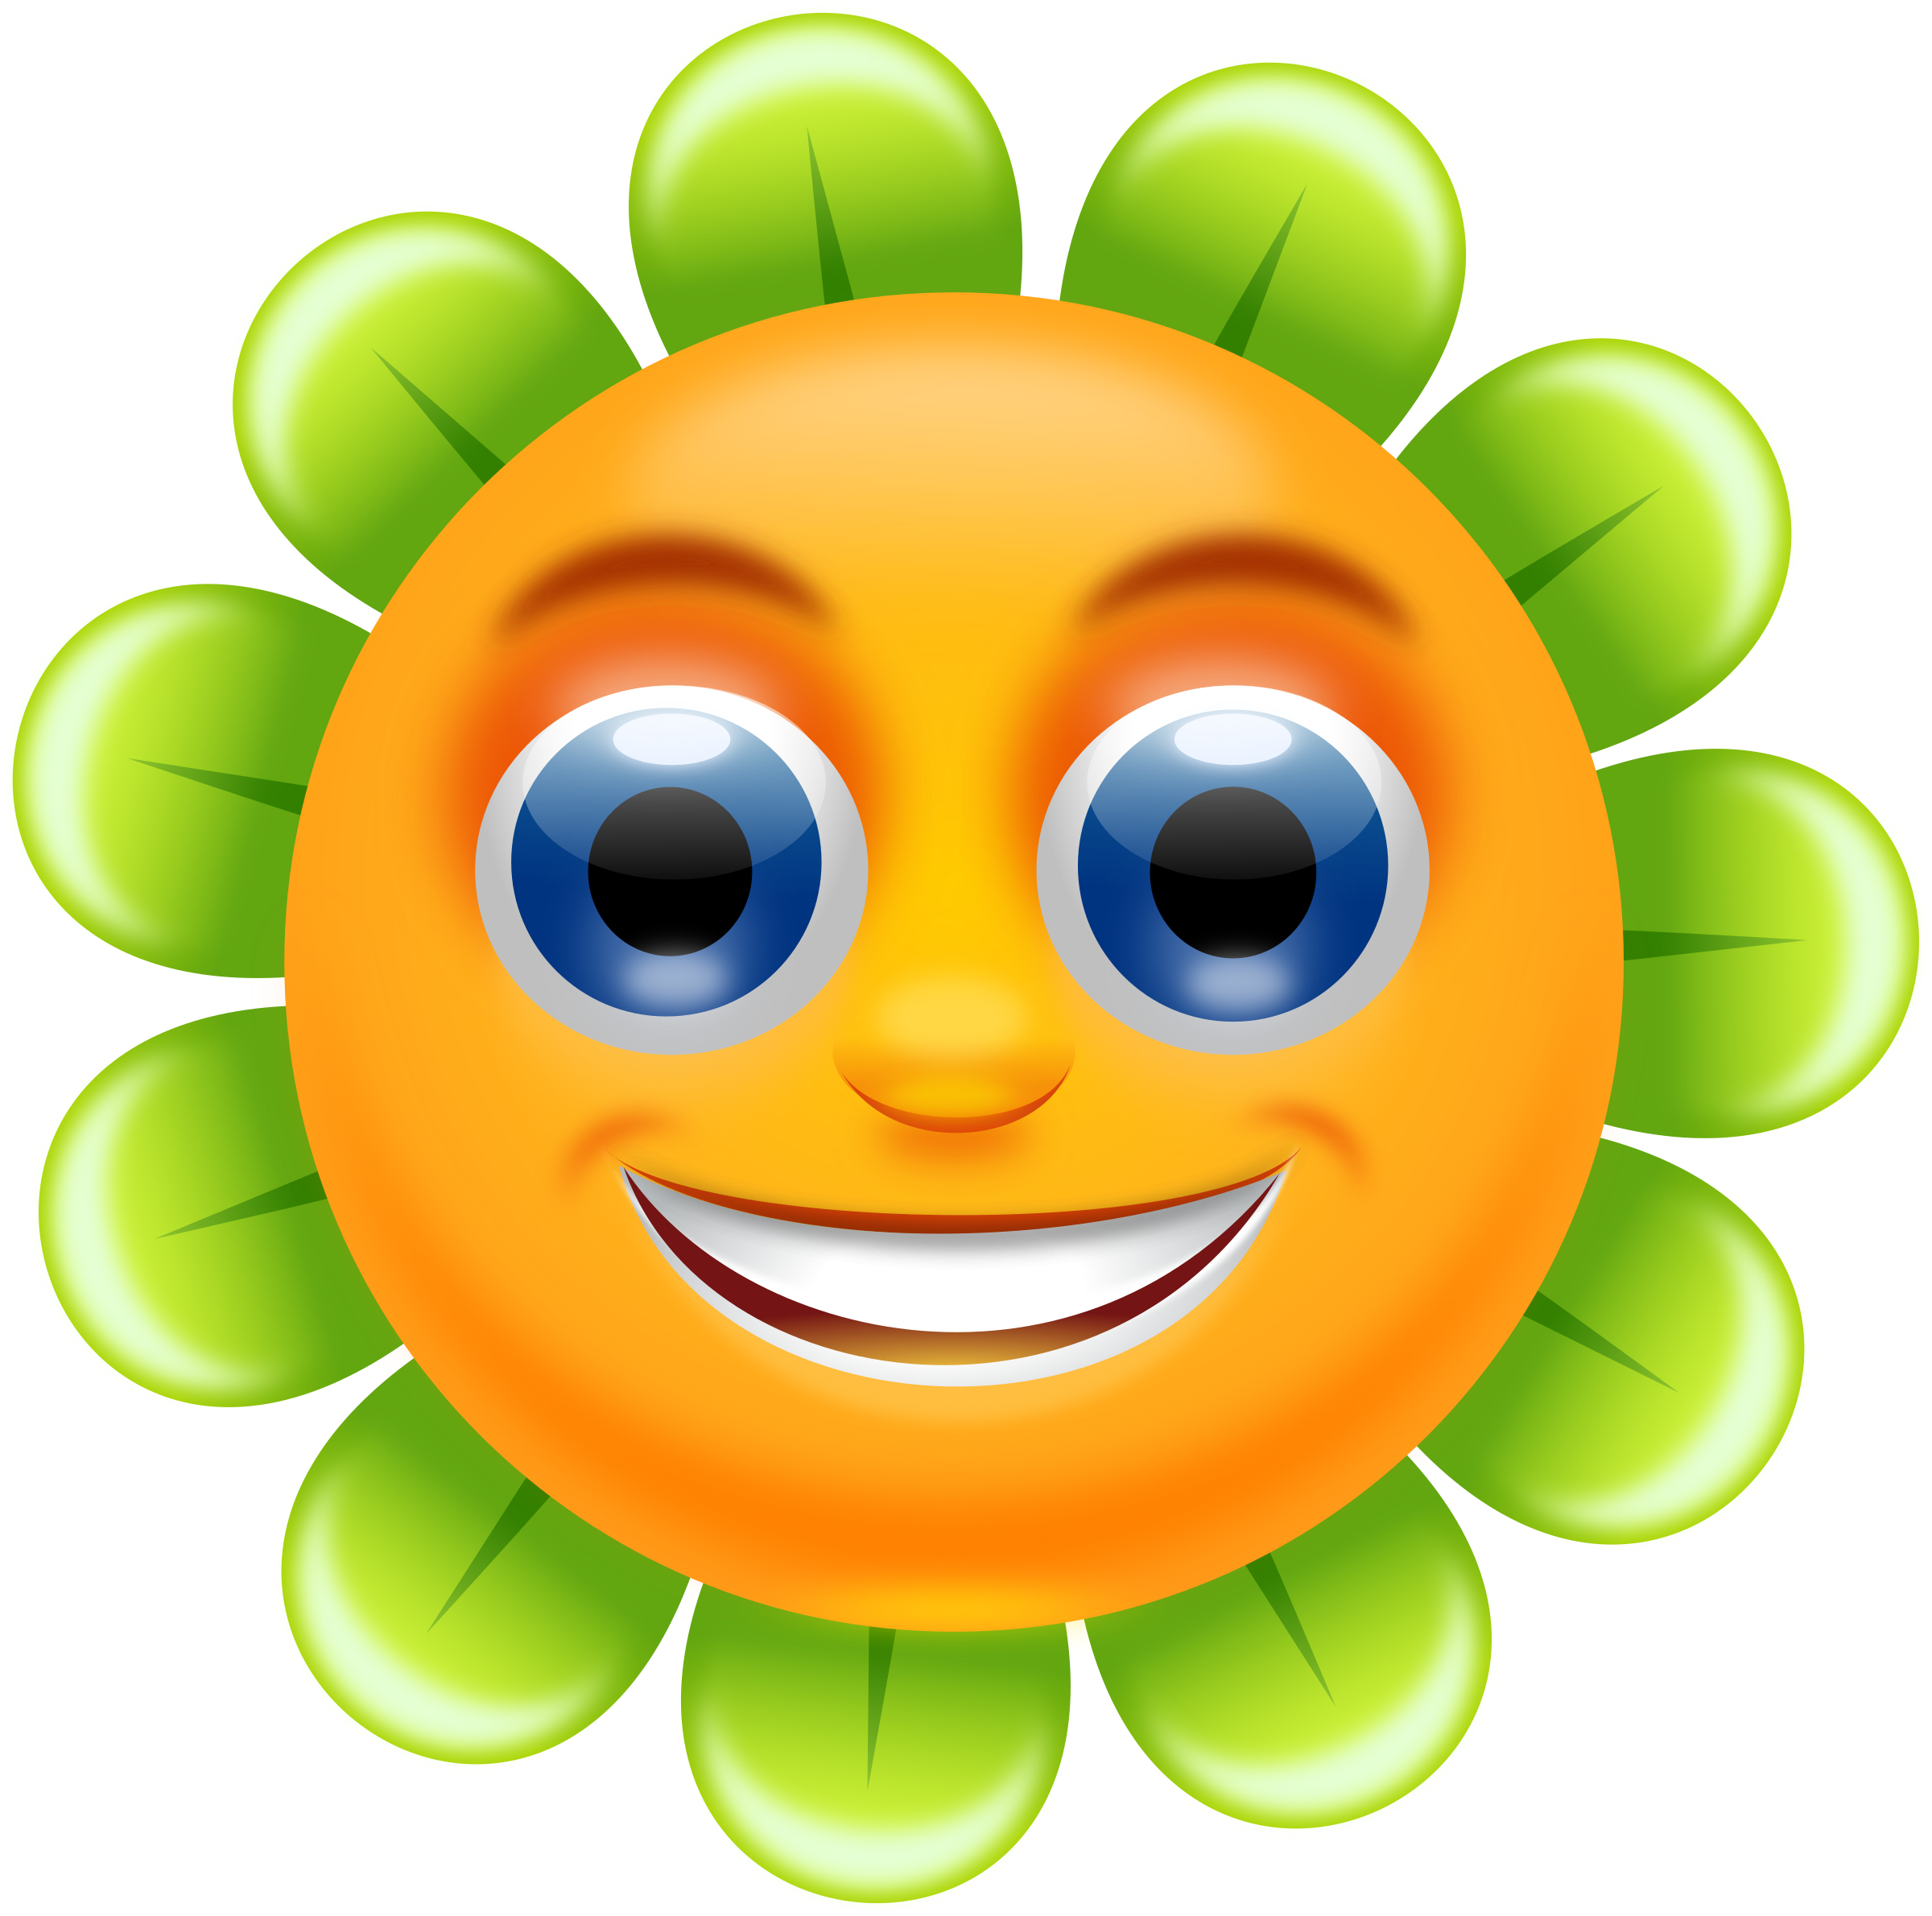 Smiley clipart border. Smiling flower remix by